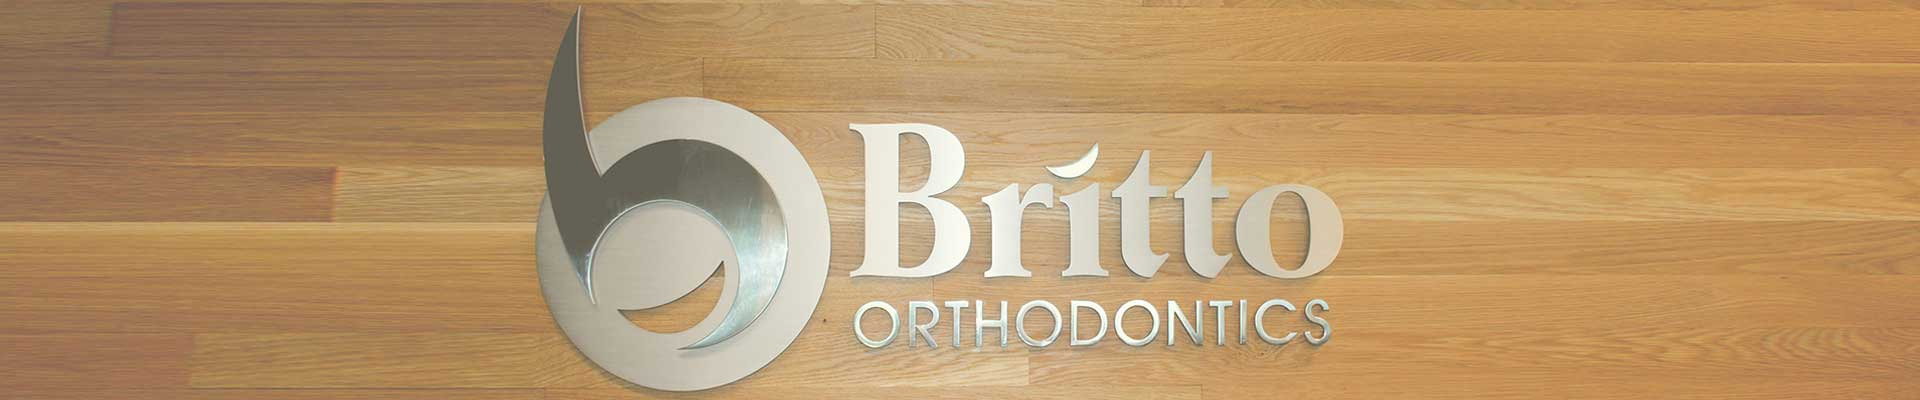 Logo Britto Orthodontics Chantilly Woodbridge VA